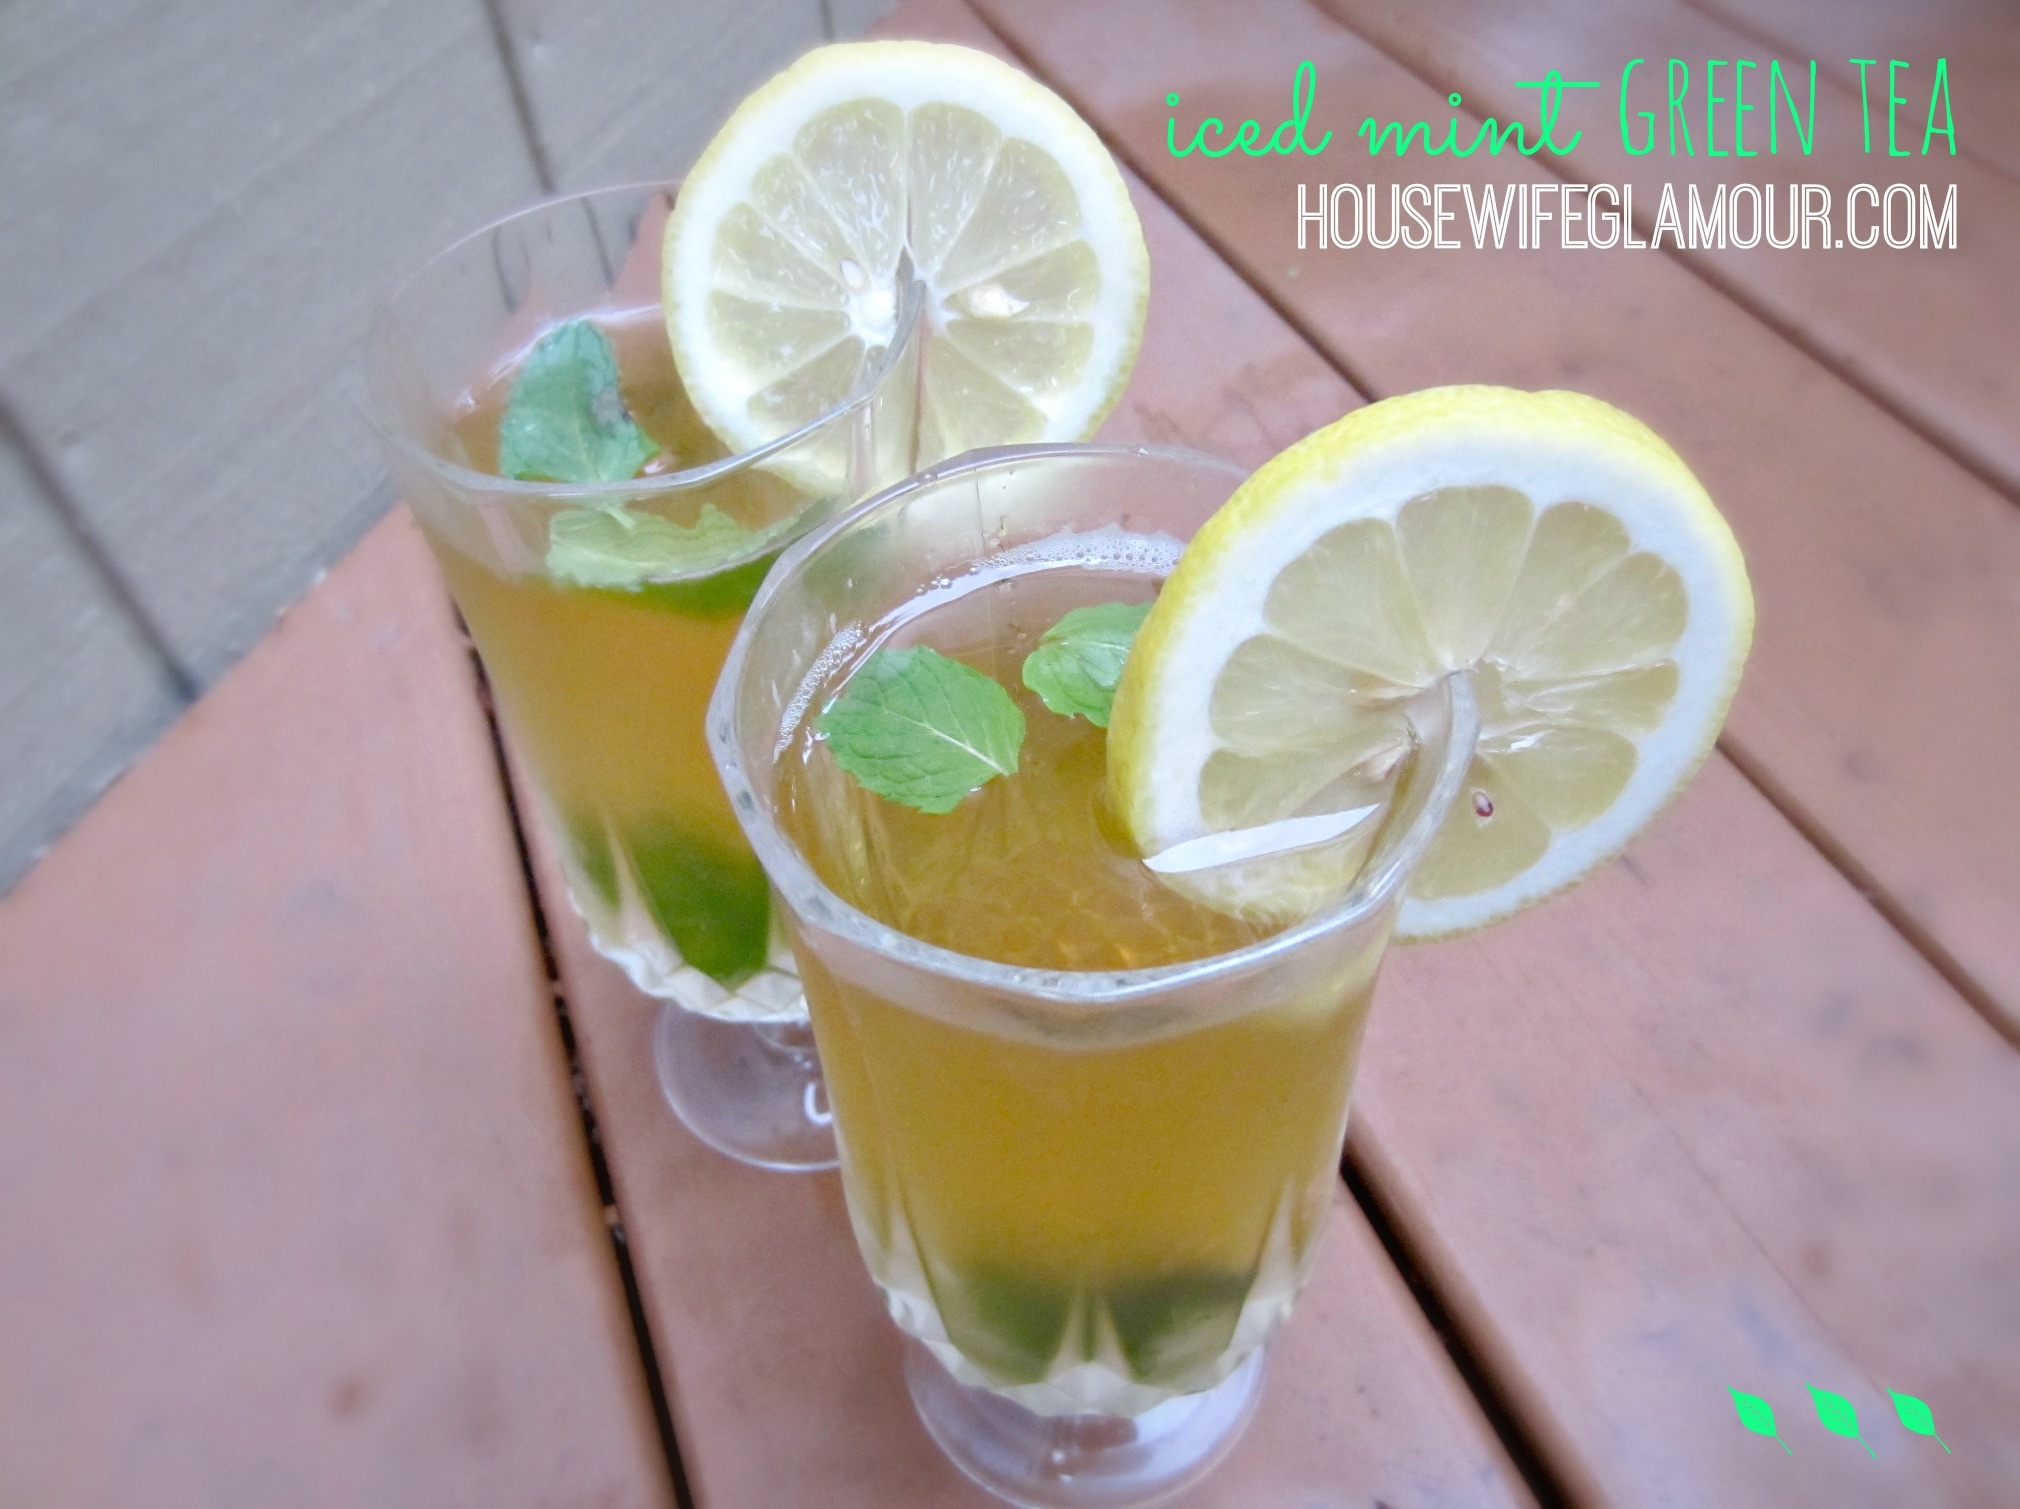 Iced Mint Green Tea with lemon recipe